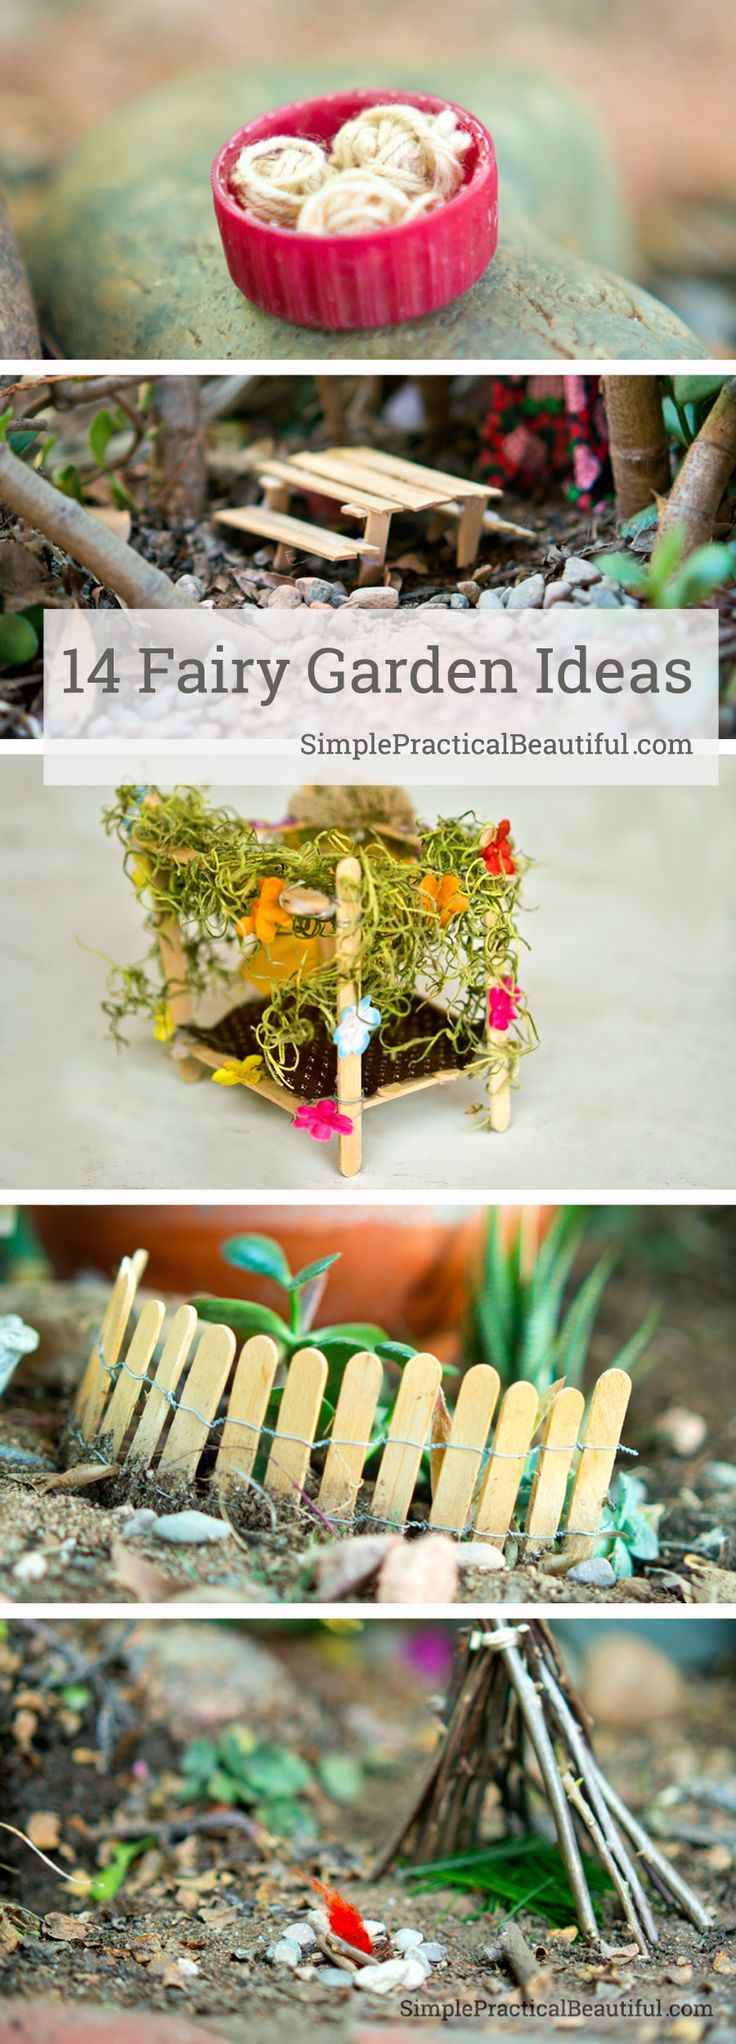 Diy Fairy Garden Ideas the 25+ best diy fairy garden ideas on pinterest | diy fairy house